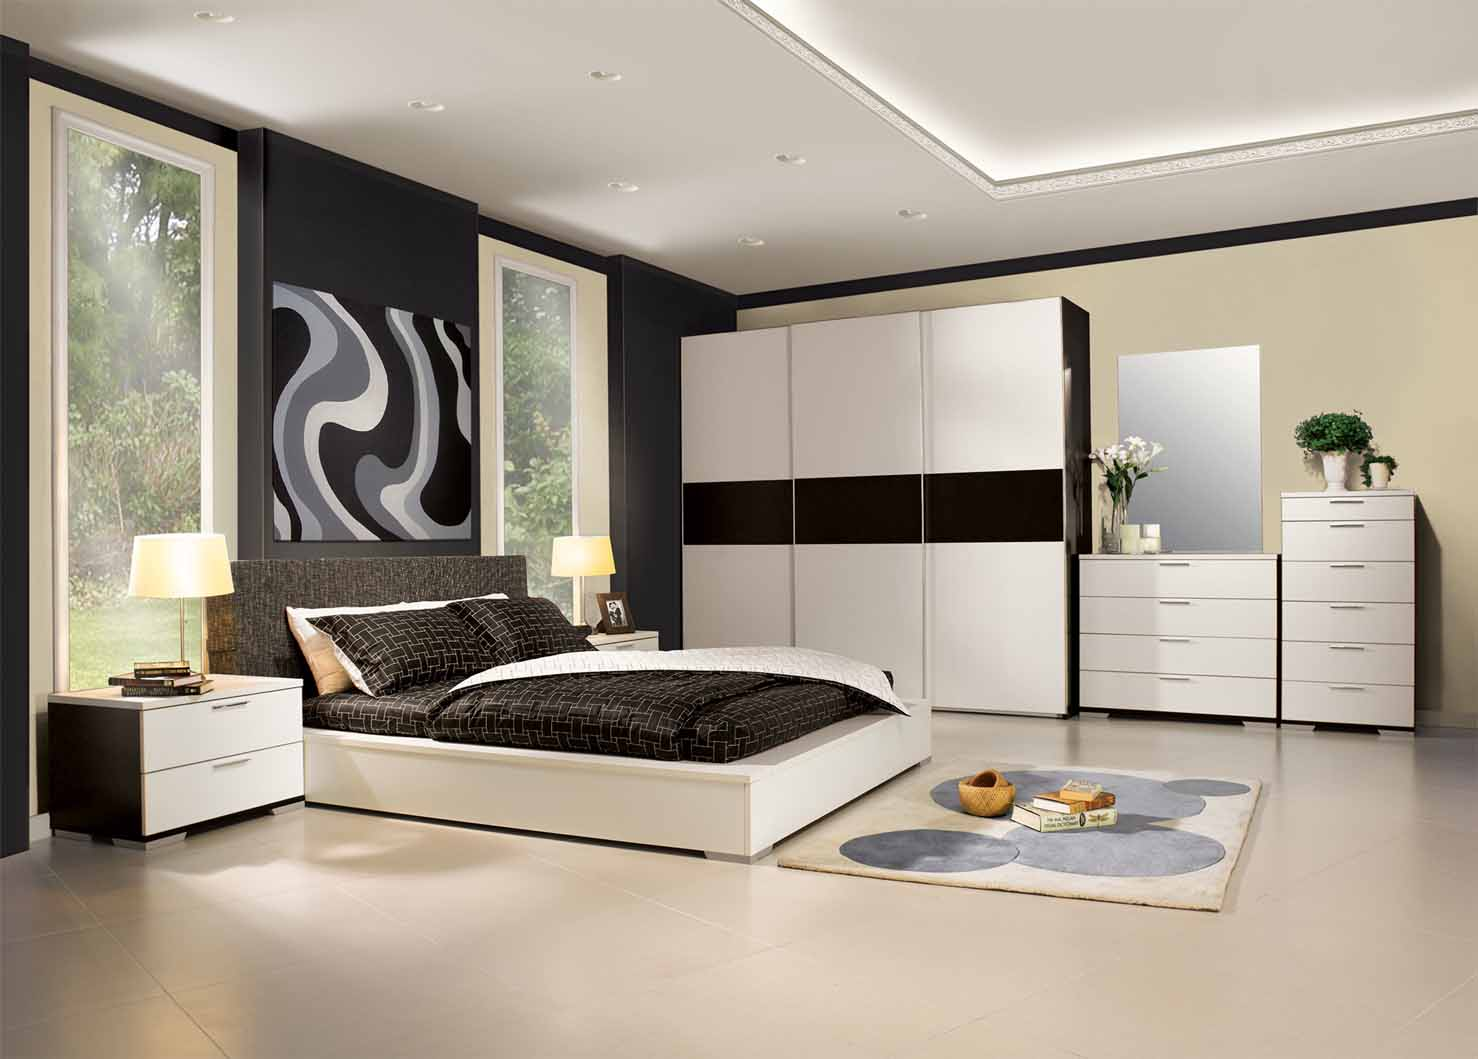 Modern bedroom design fouadtalal for New bedroom design